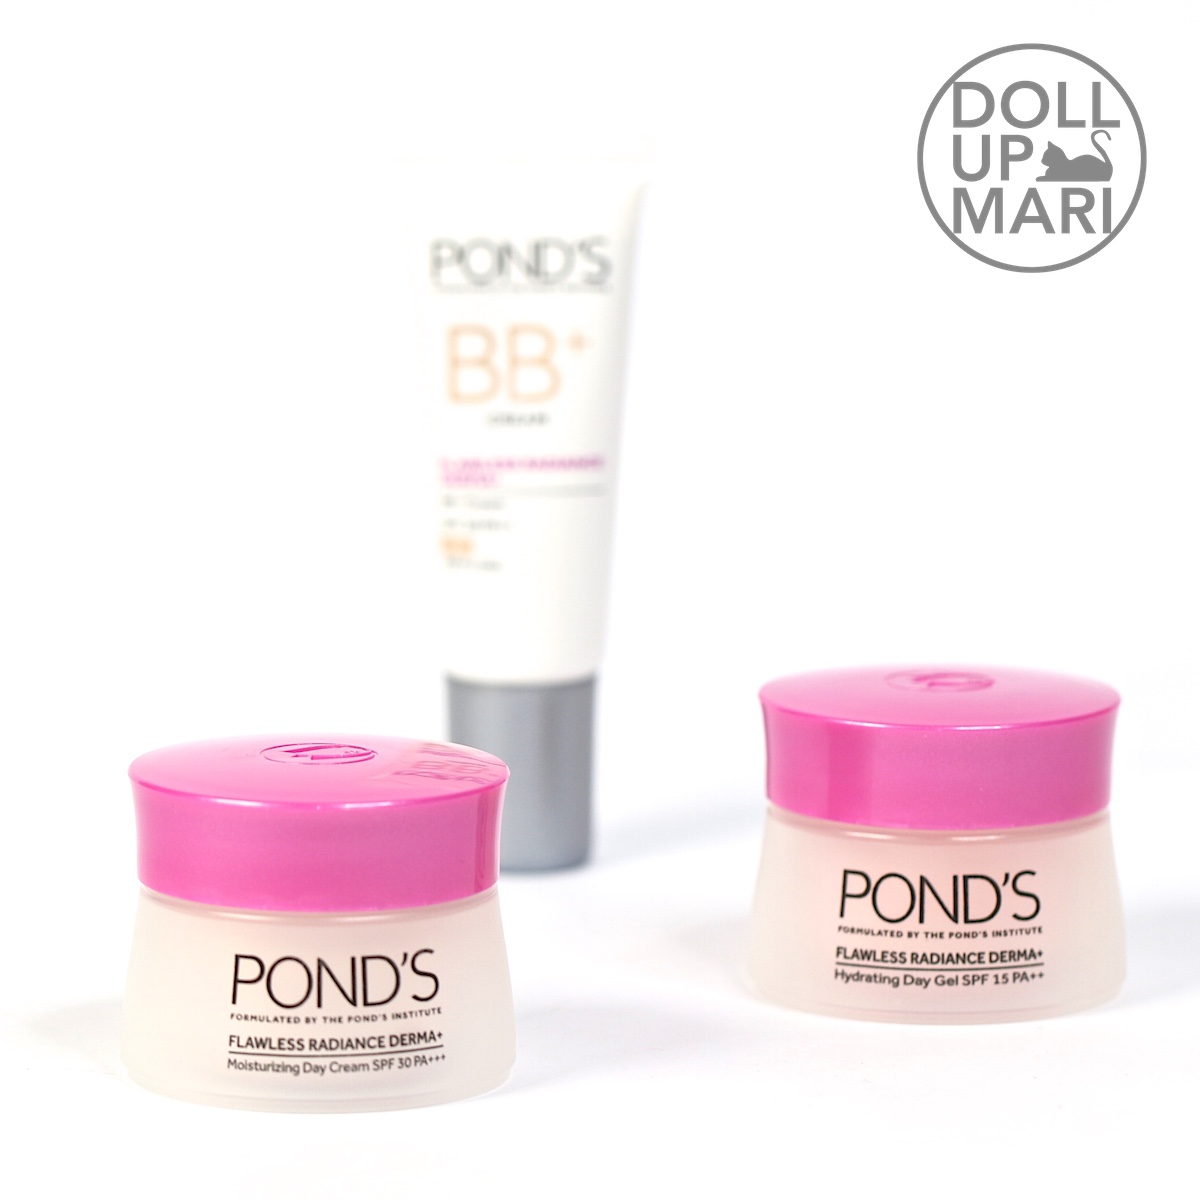 Ponds Flawless Radiance Derma Half Pencil Pond S White Brightening Night Cream 10g Range